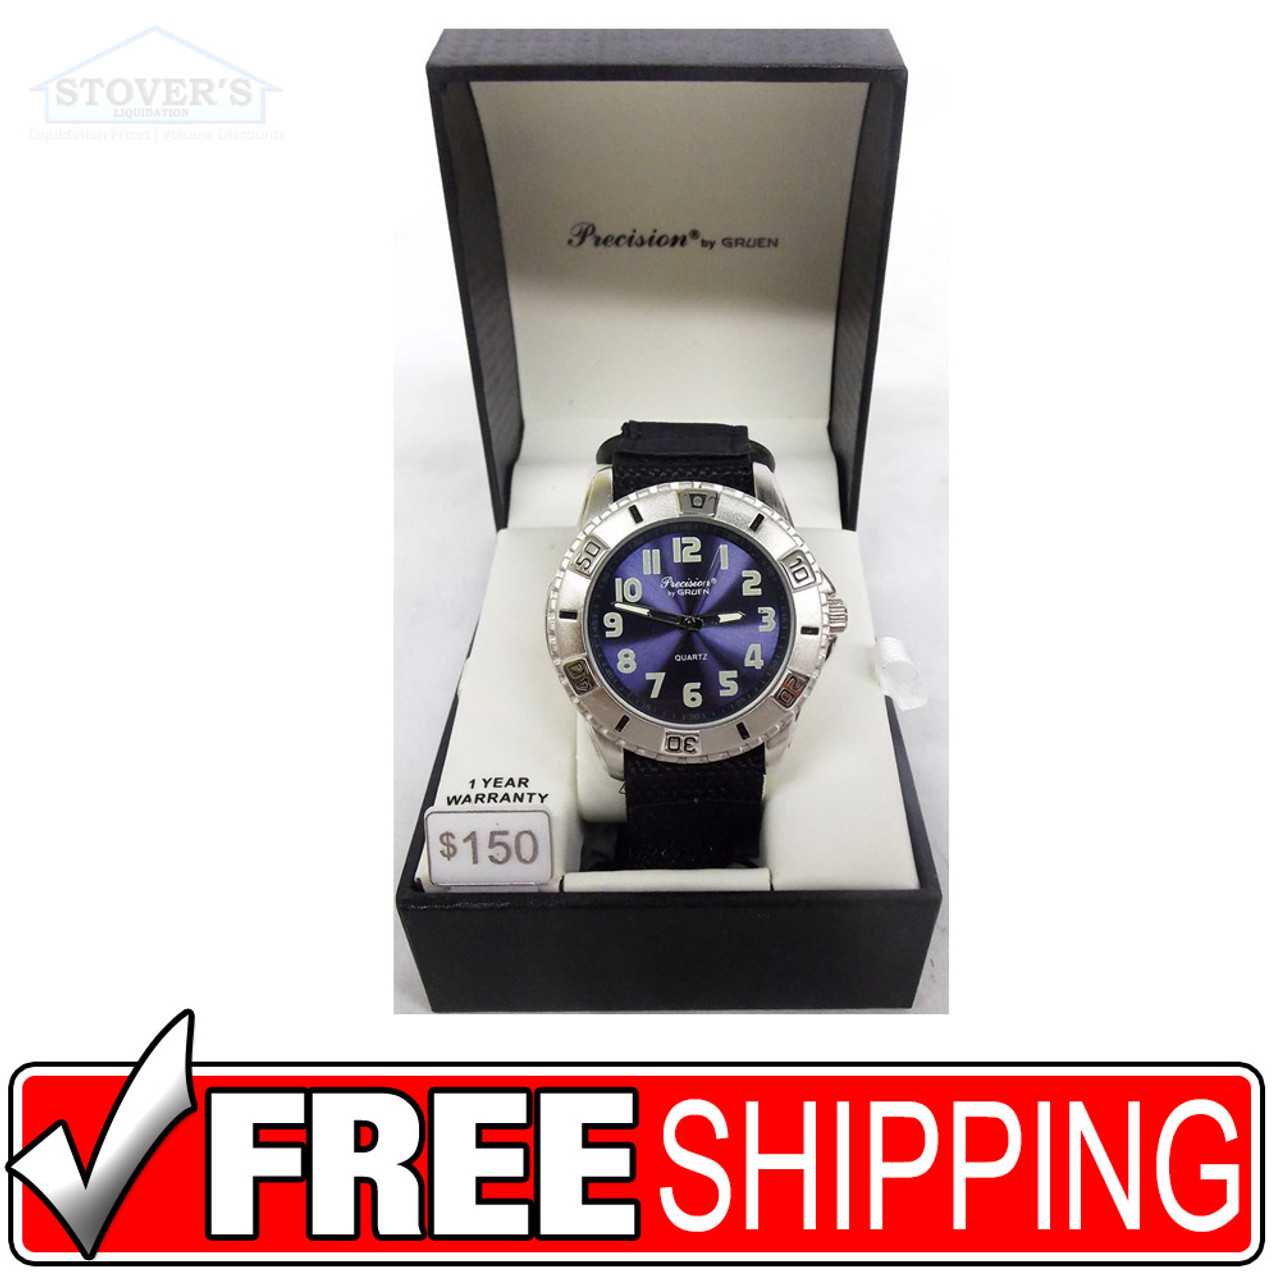 Men's Watch -Silver and Navy Precision by Gruen